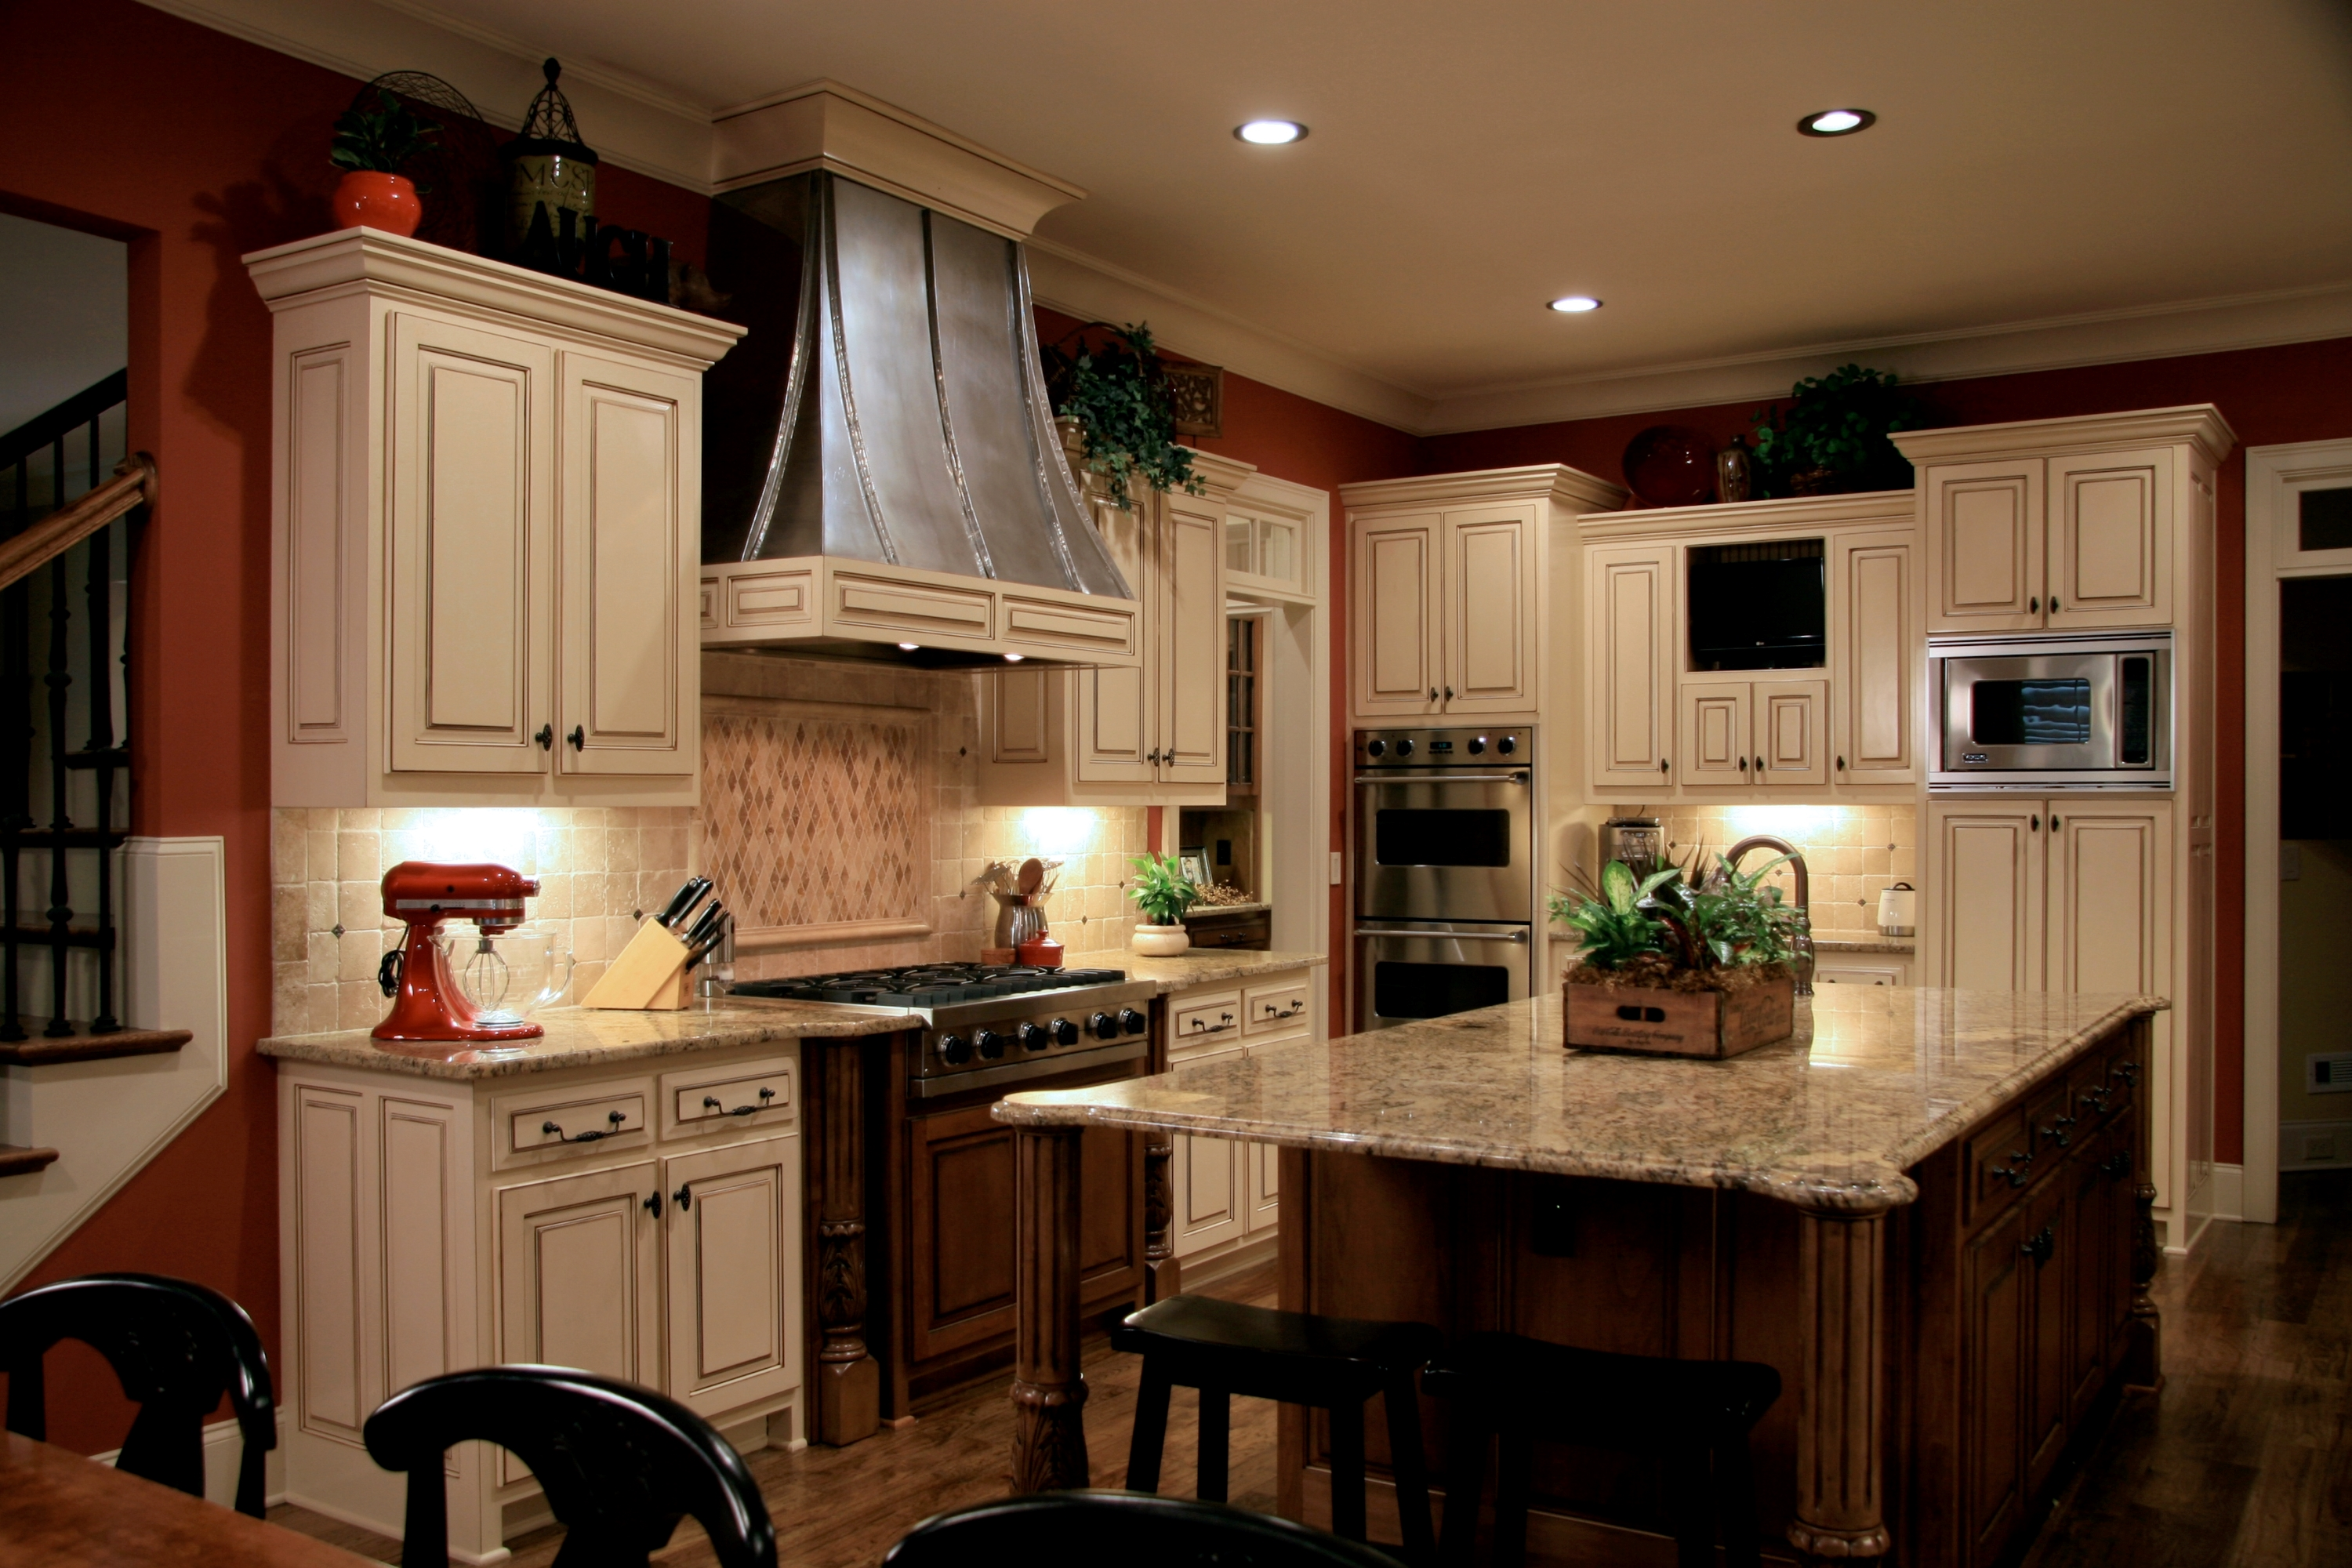 Install Recessed Lighting In A Kitchen Pro Construction